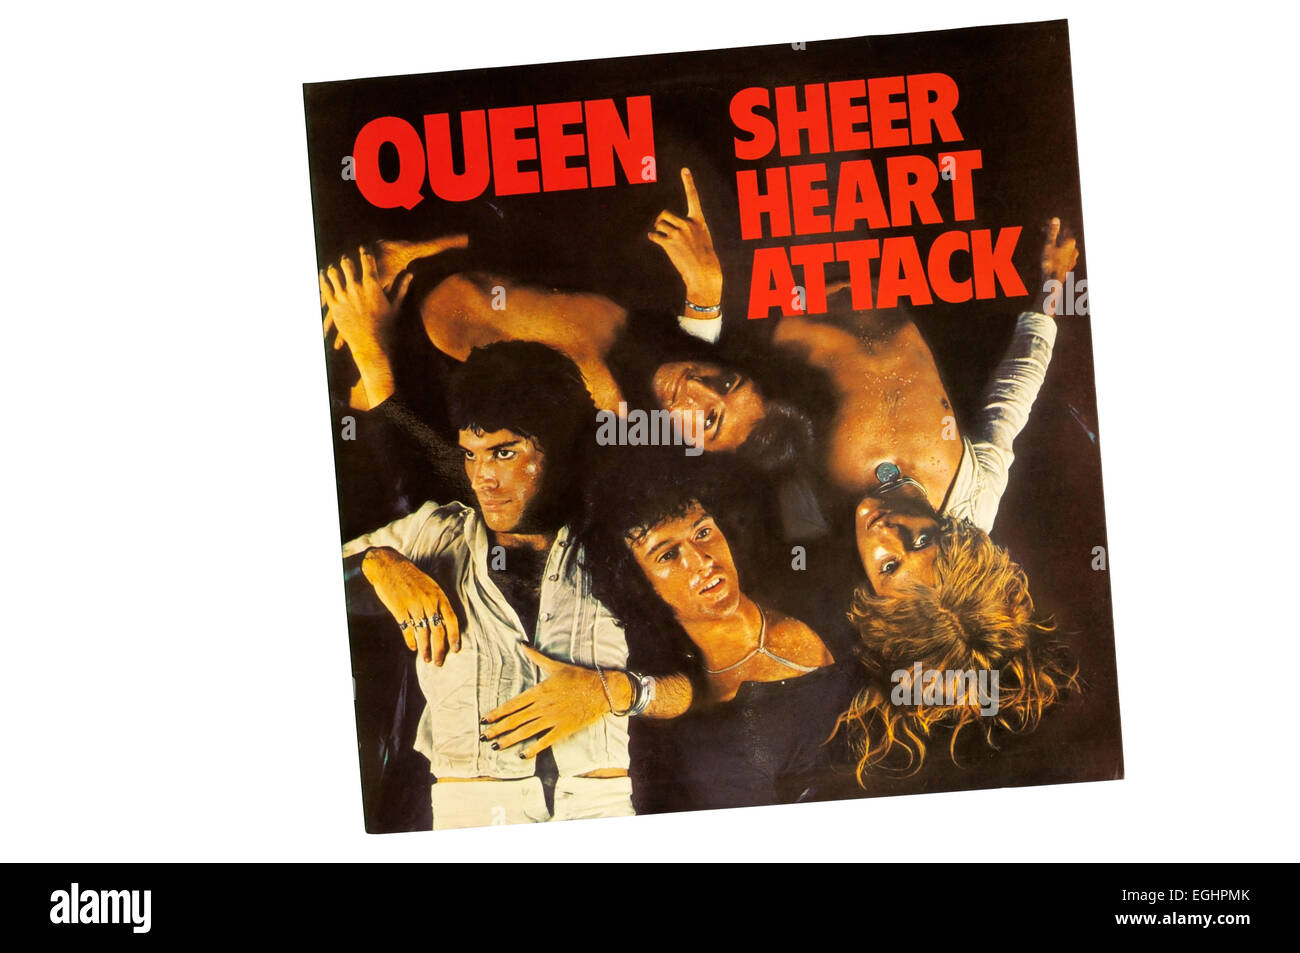 Sheer Heart Attack was the third album by British rock band Queen, released in November 1974. - Stock Image